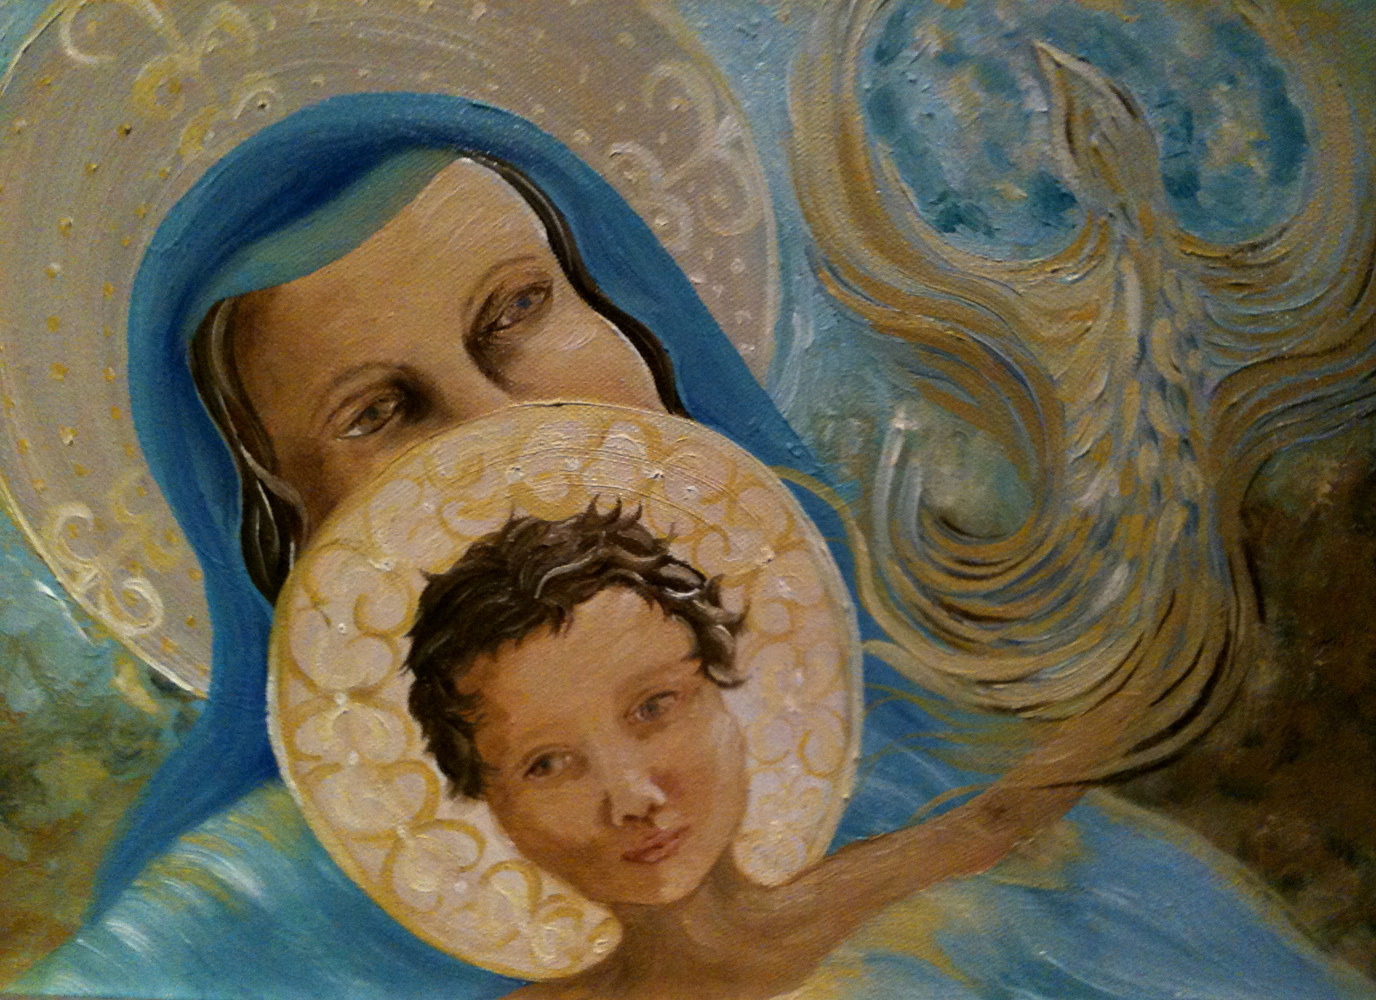 Oil painting Mary Pondered All These Things by Jayne Crawford